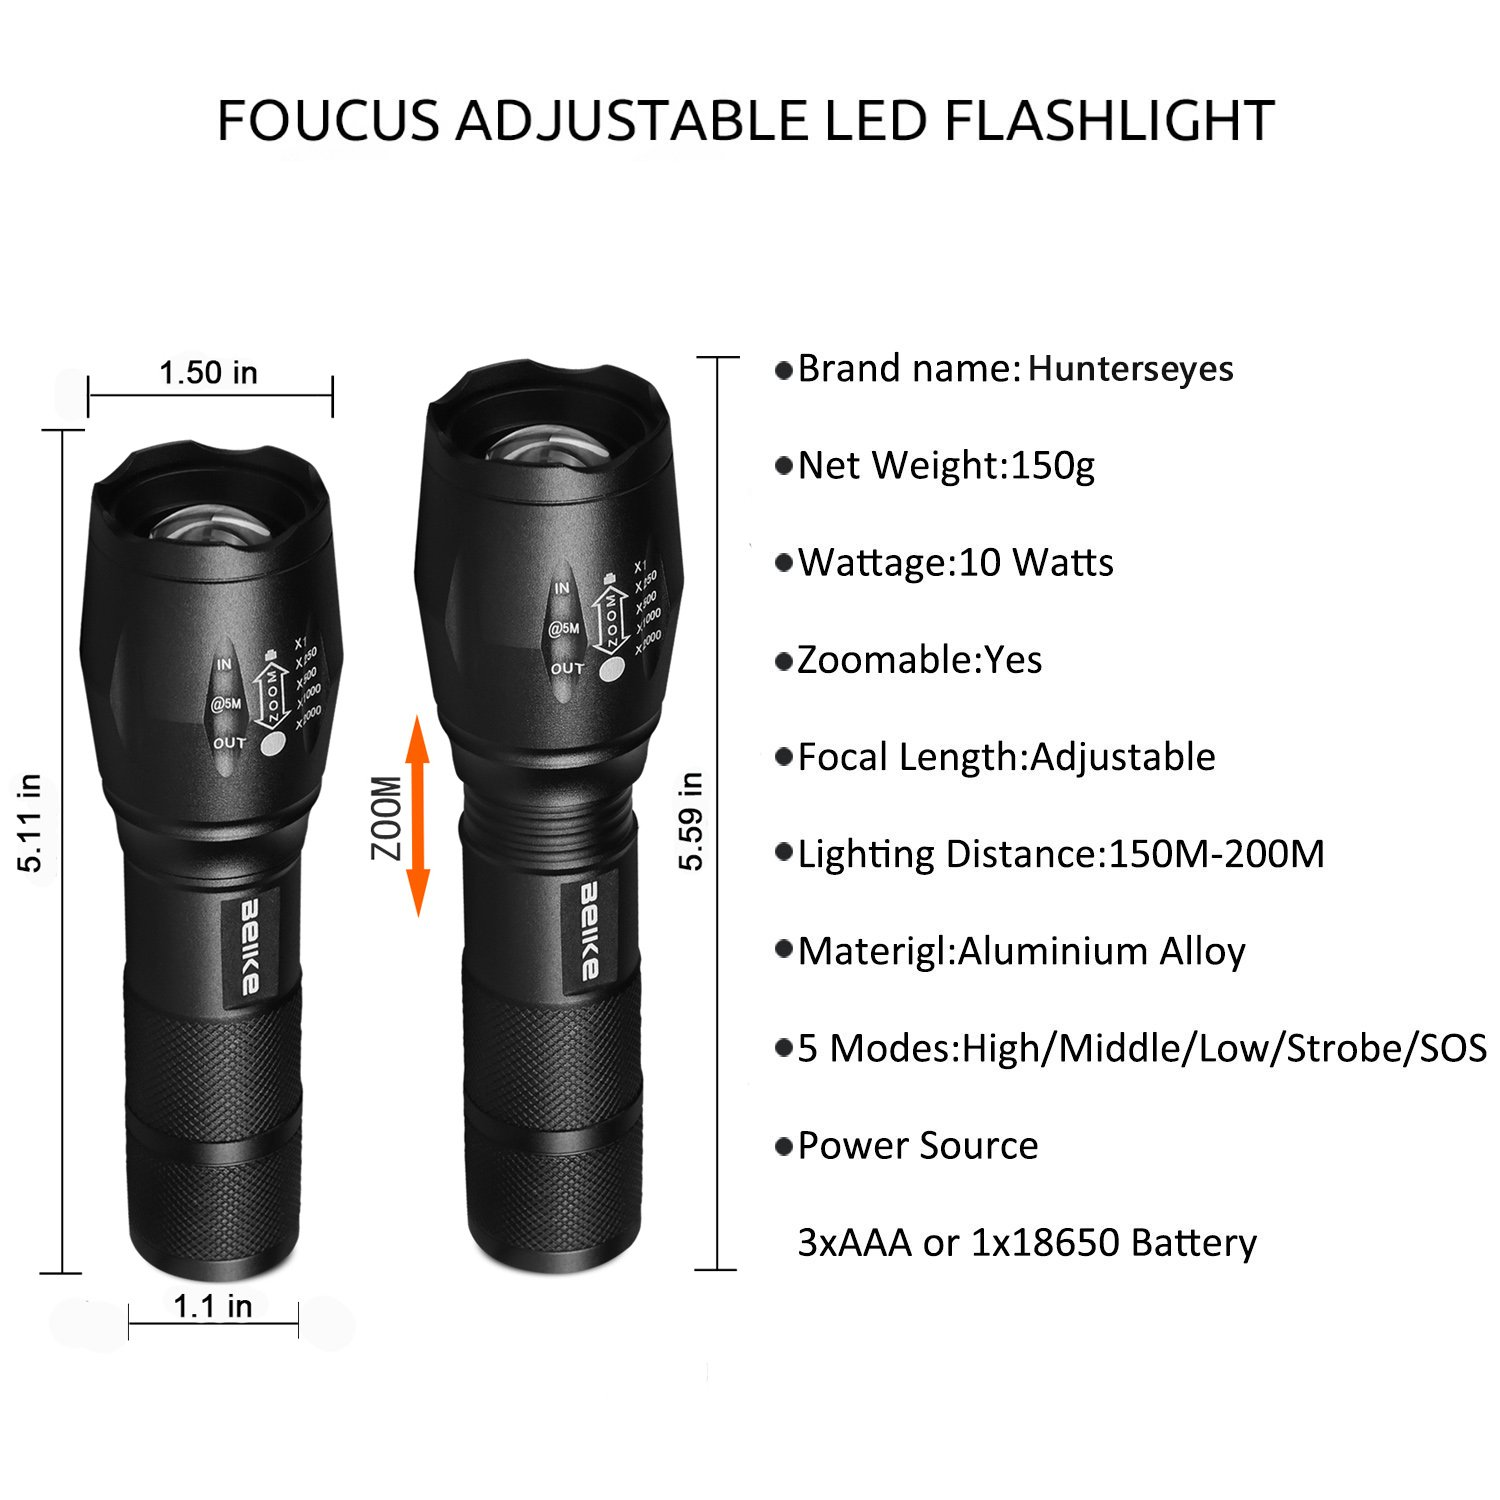 Beike 2 Pack 1000 lumens Tactical Flashlights, Super Bright Handheld Outdoor CREE LED Torch Flashlight with Adjustable Focus 5 Light Modes for Camping Hiking Emergency(AAA Batteries Included) by Beike (Image #5)